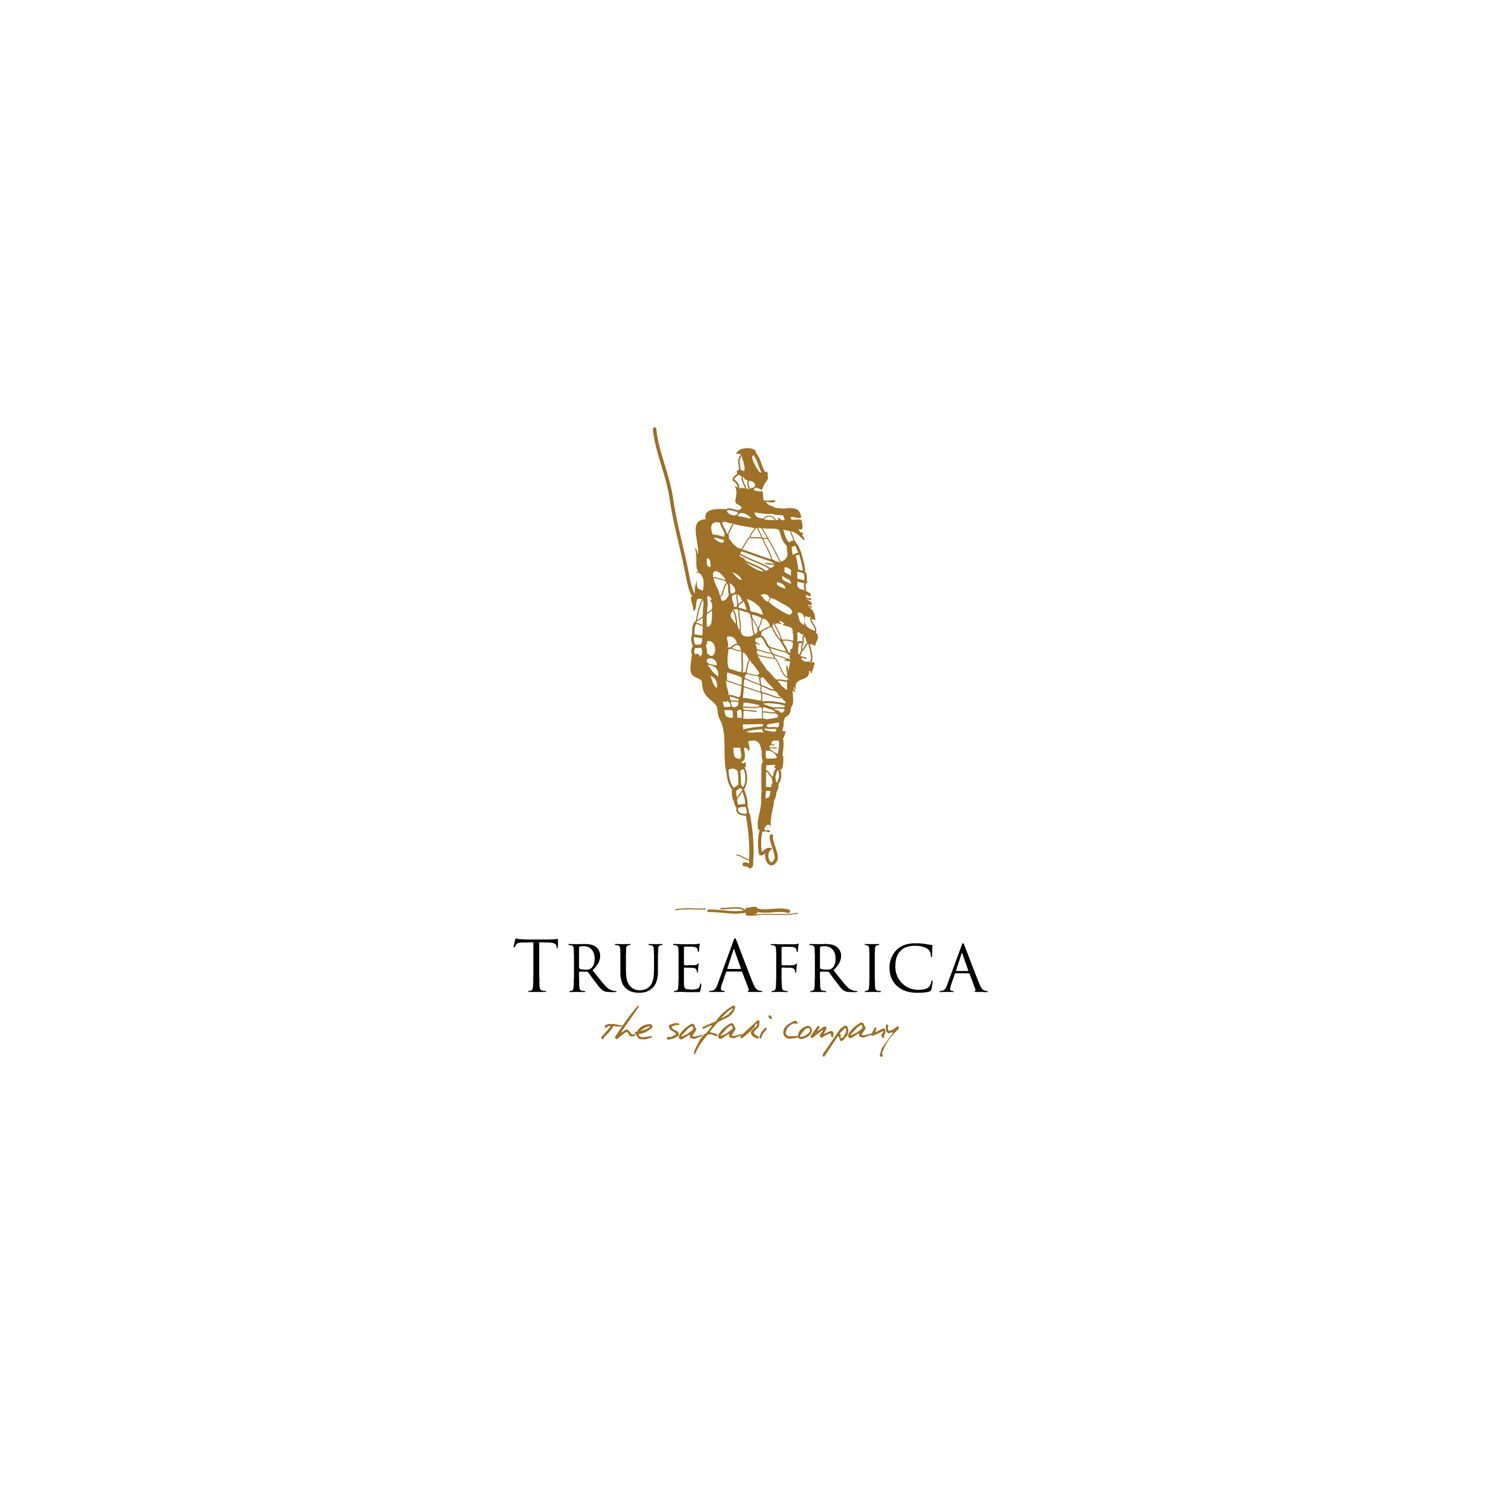 True Africa Safari Company logo design | myDesign | Pinterest ... for Corporate Logo Design Samples  239wja